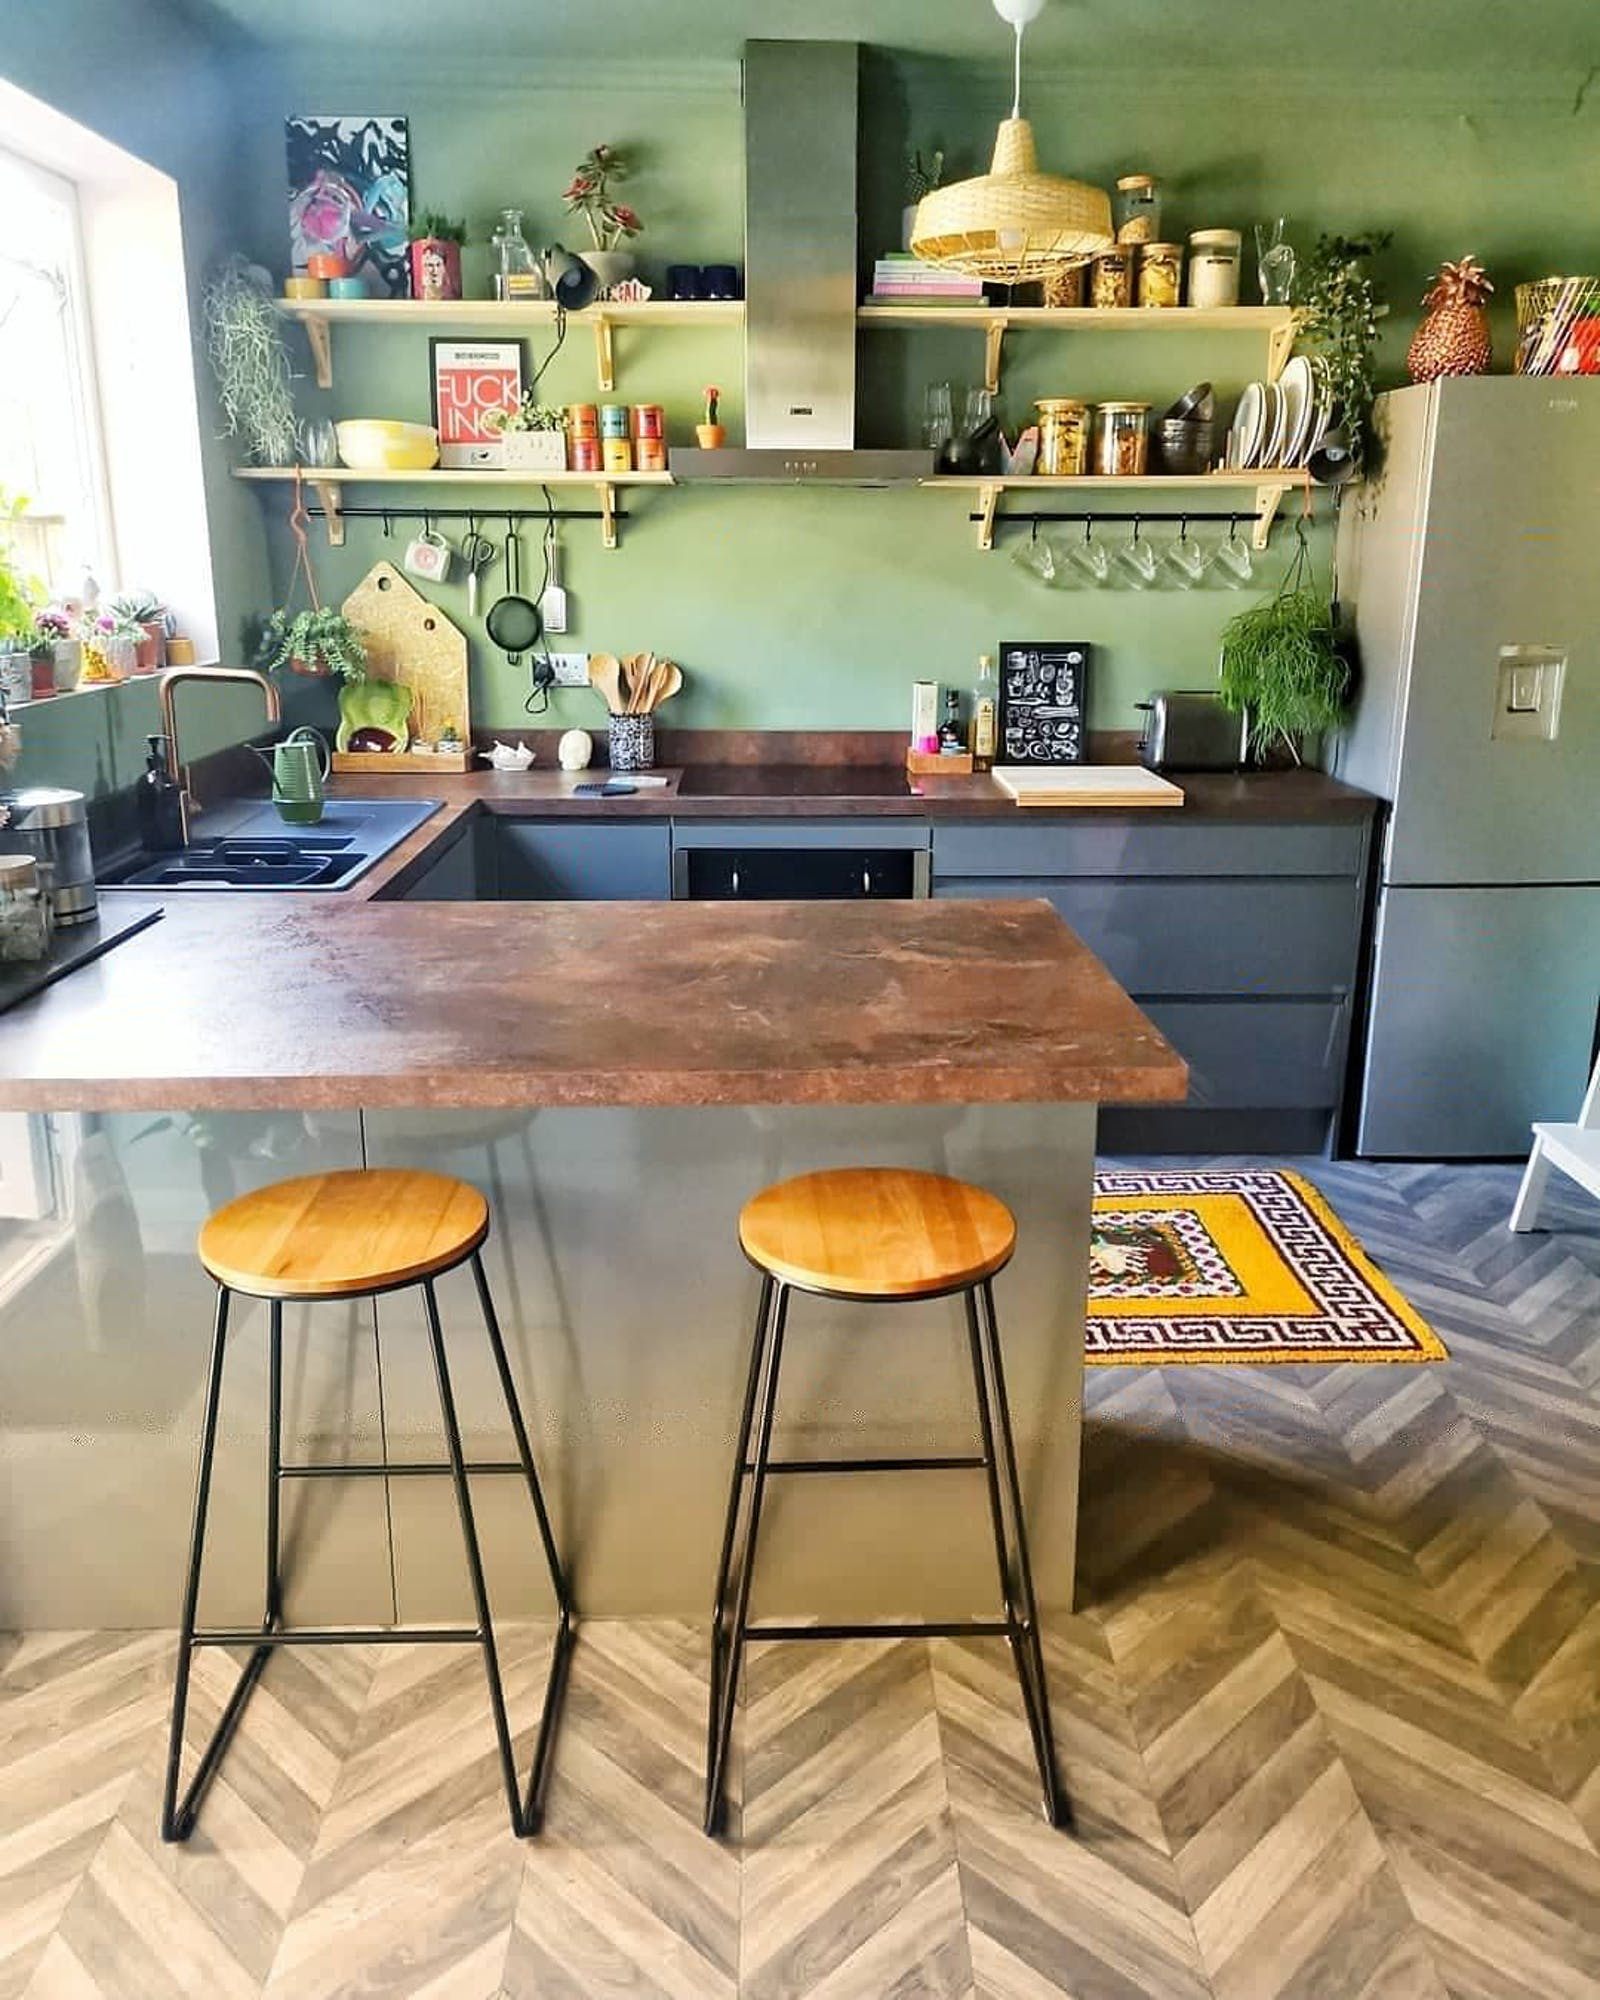 Kitchen painted in light green with wooden and vintage details